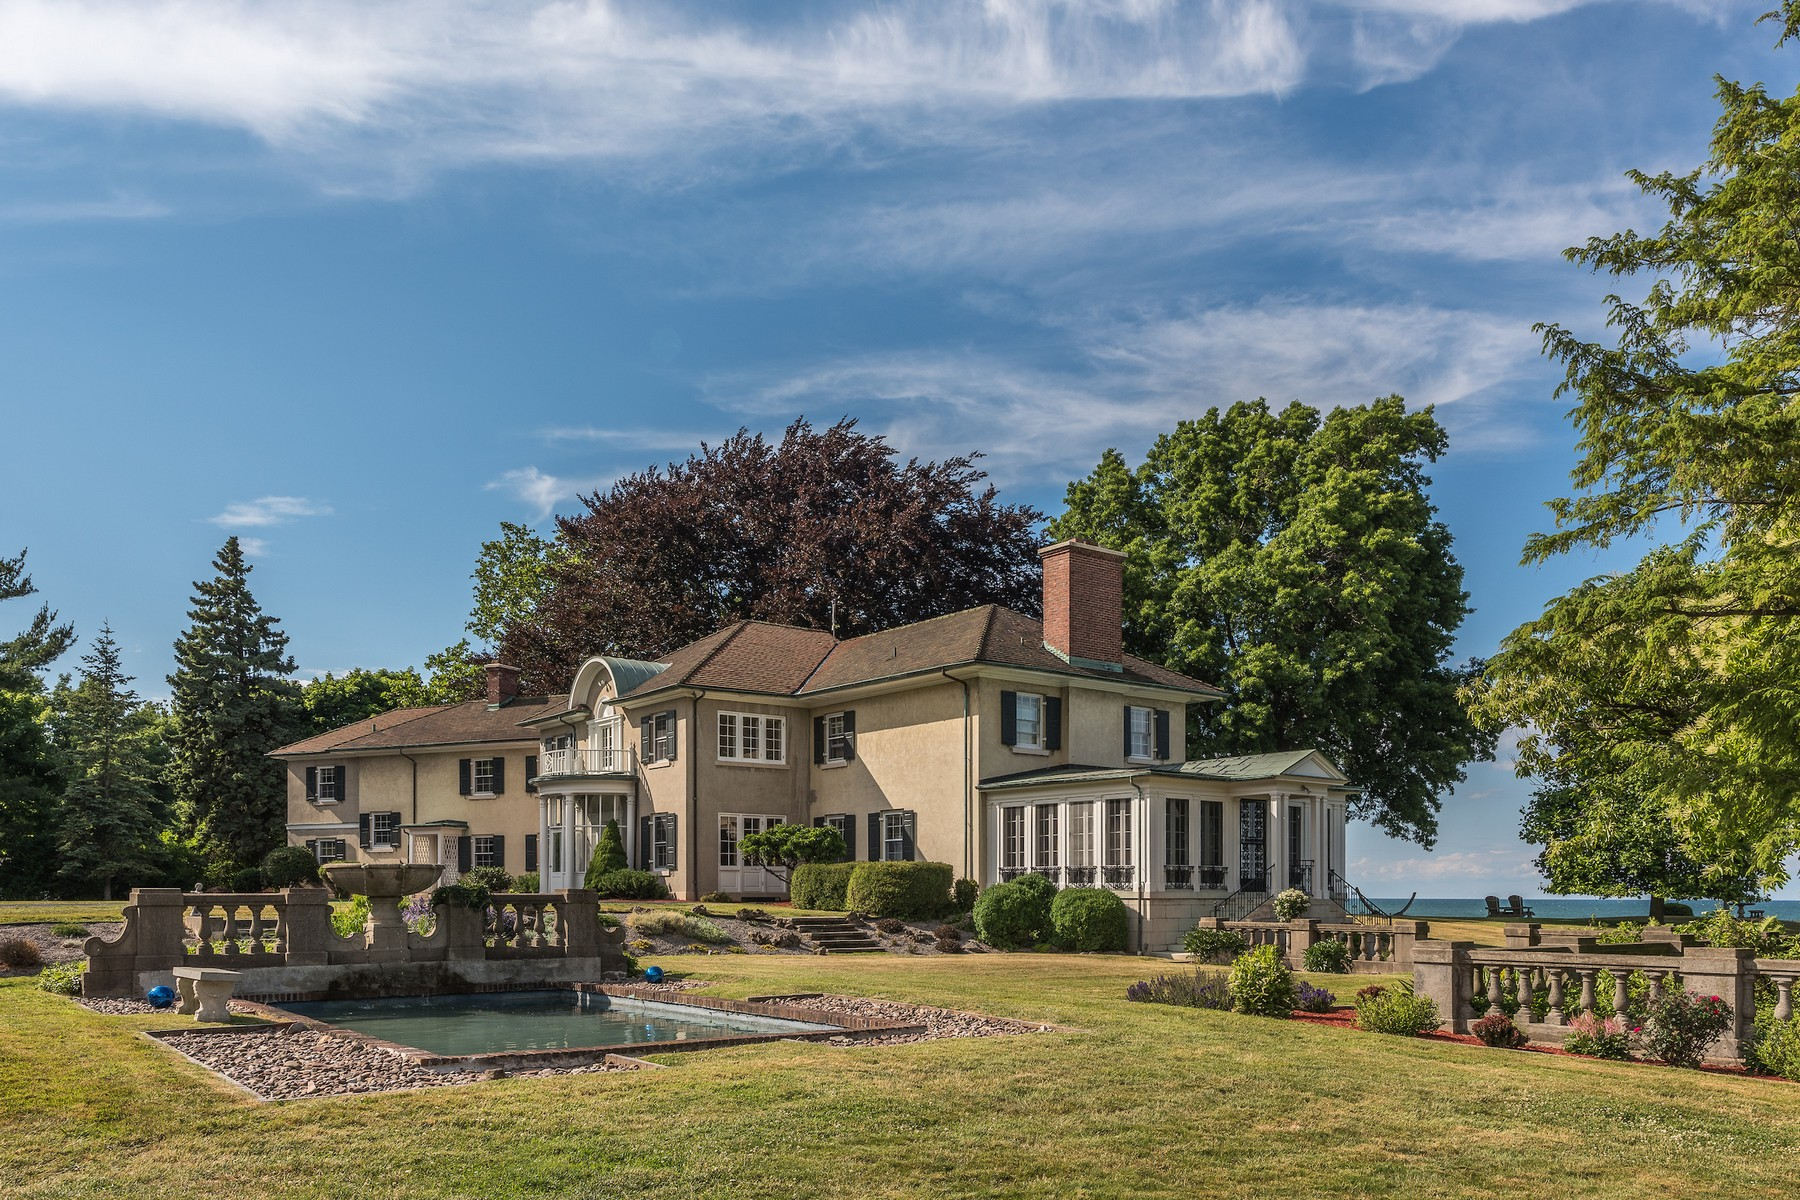 Single Family Home for Sale at Gold Coast Estate on Lake Ontario 630 Rock Beach Rd Irondequoit, New York 14617 United States